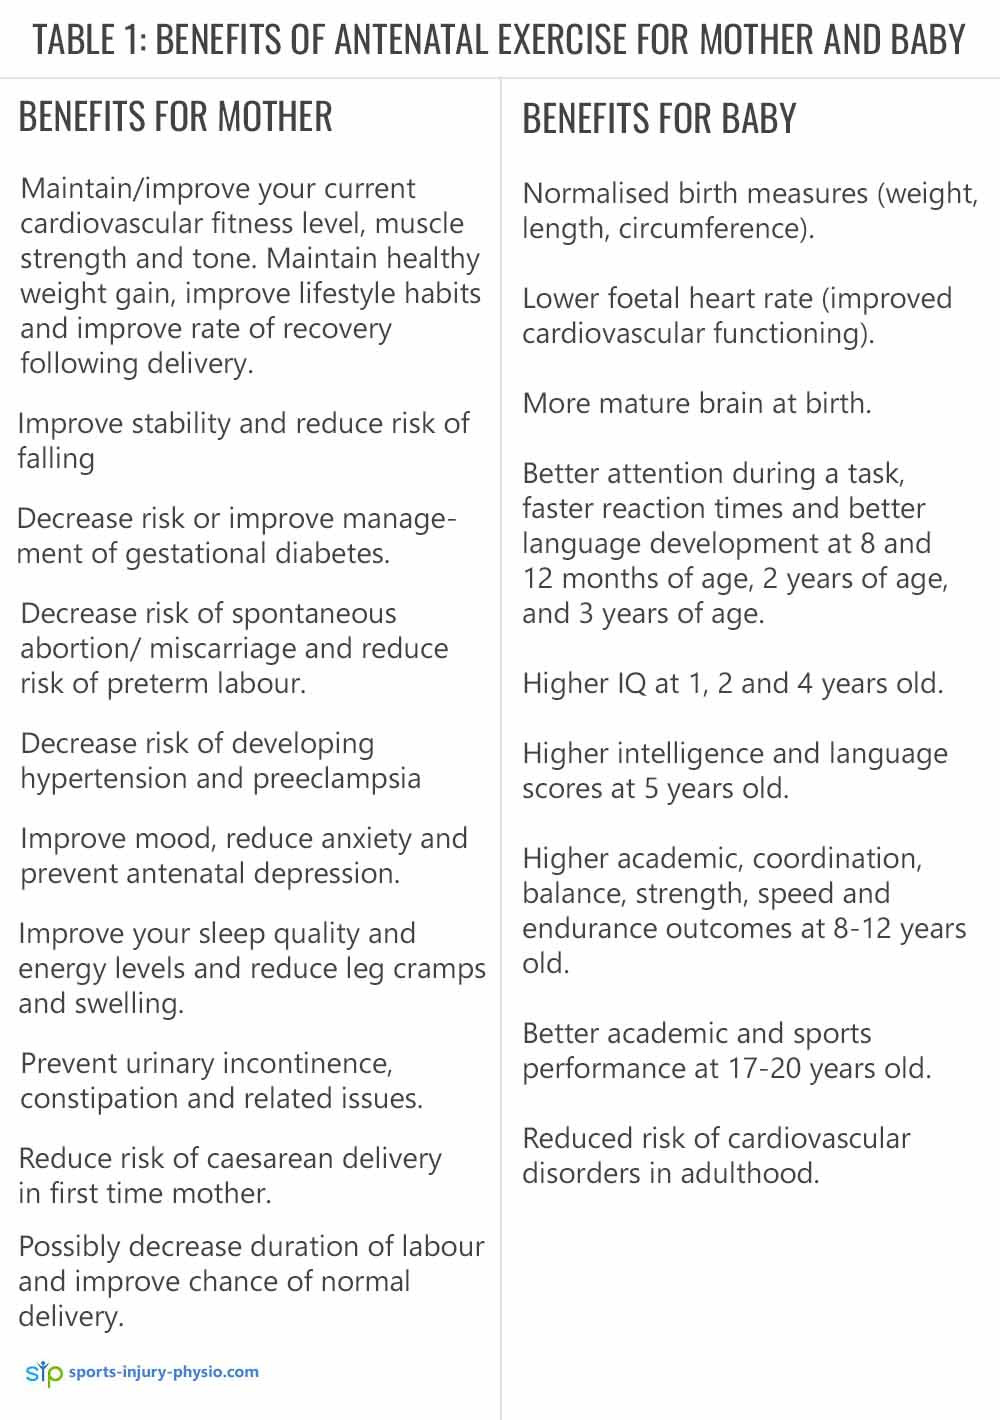 TABLE 1: BENEFITS OF ANTENATAL EXERCISE FOR MOTHER AND BABY